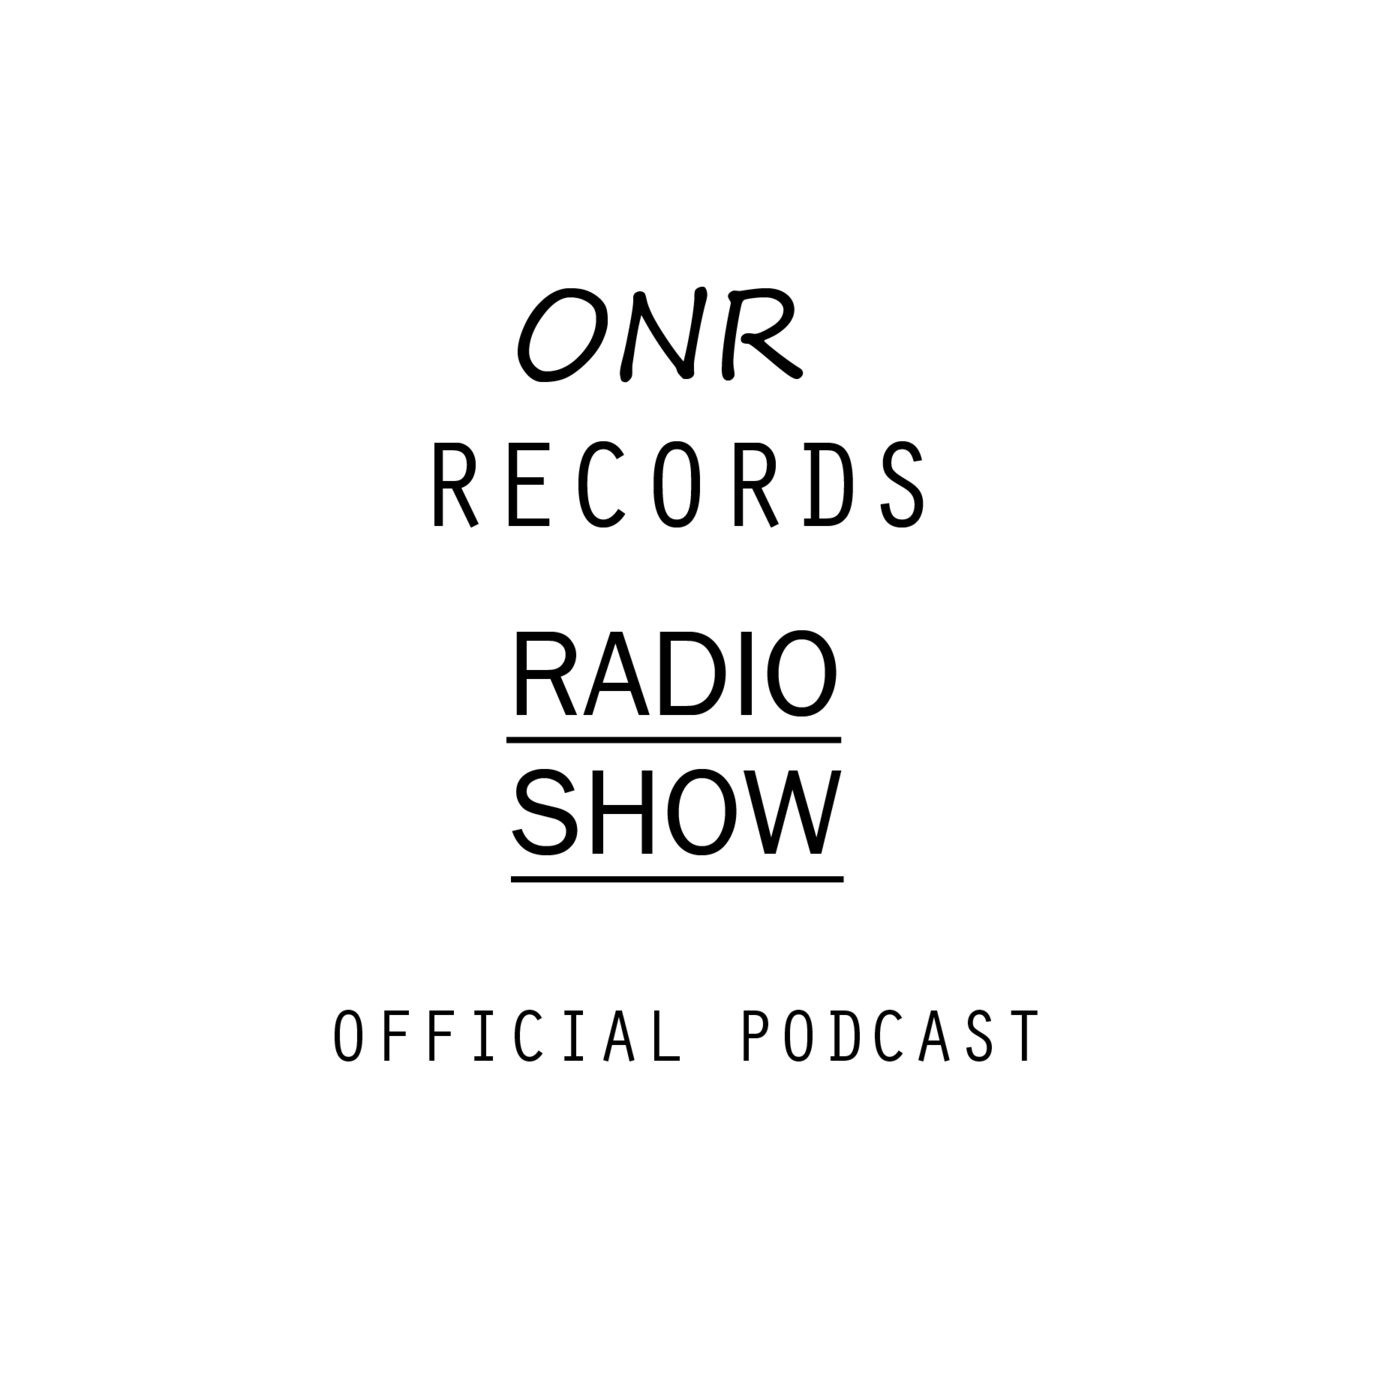 Out Now Records Radio Show